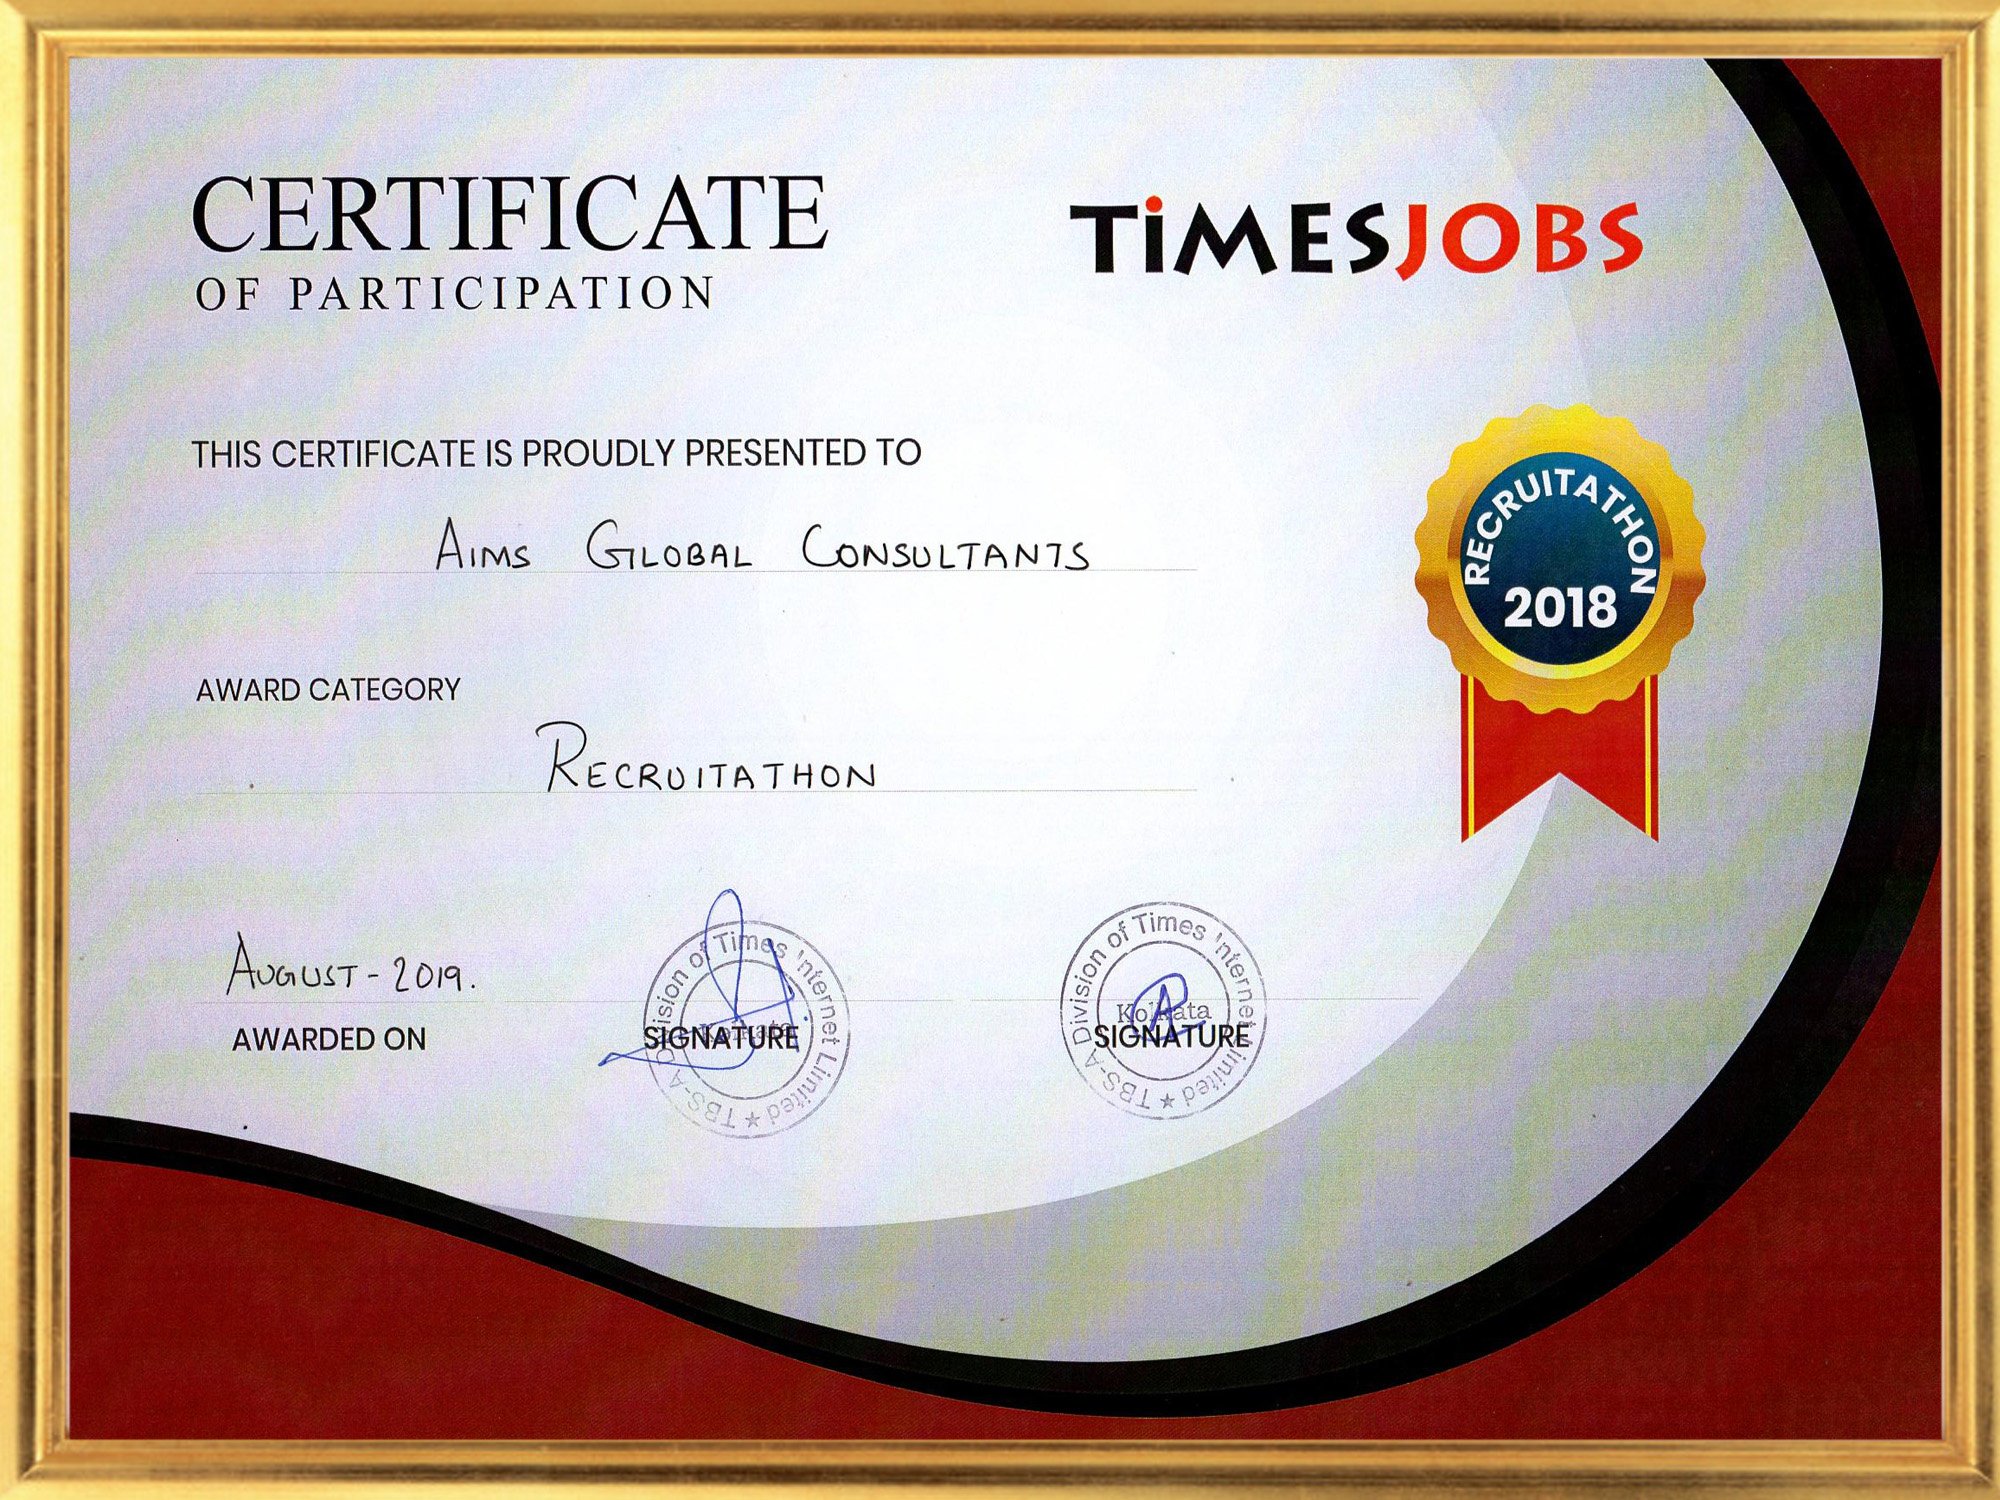 aims global consultants certification by times jobs